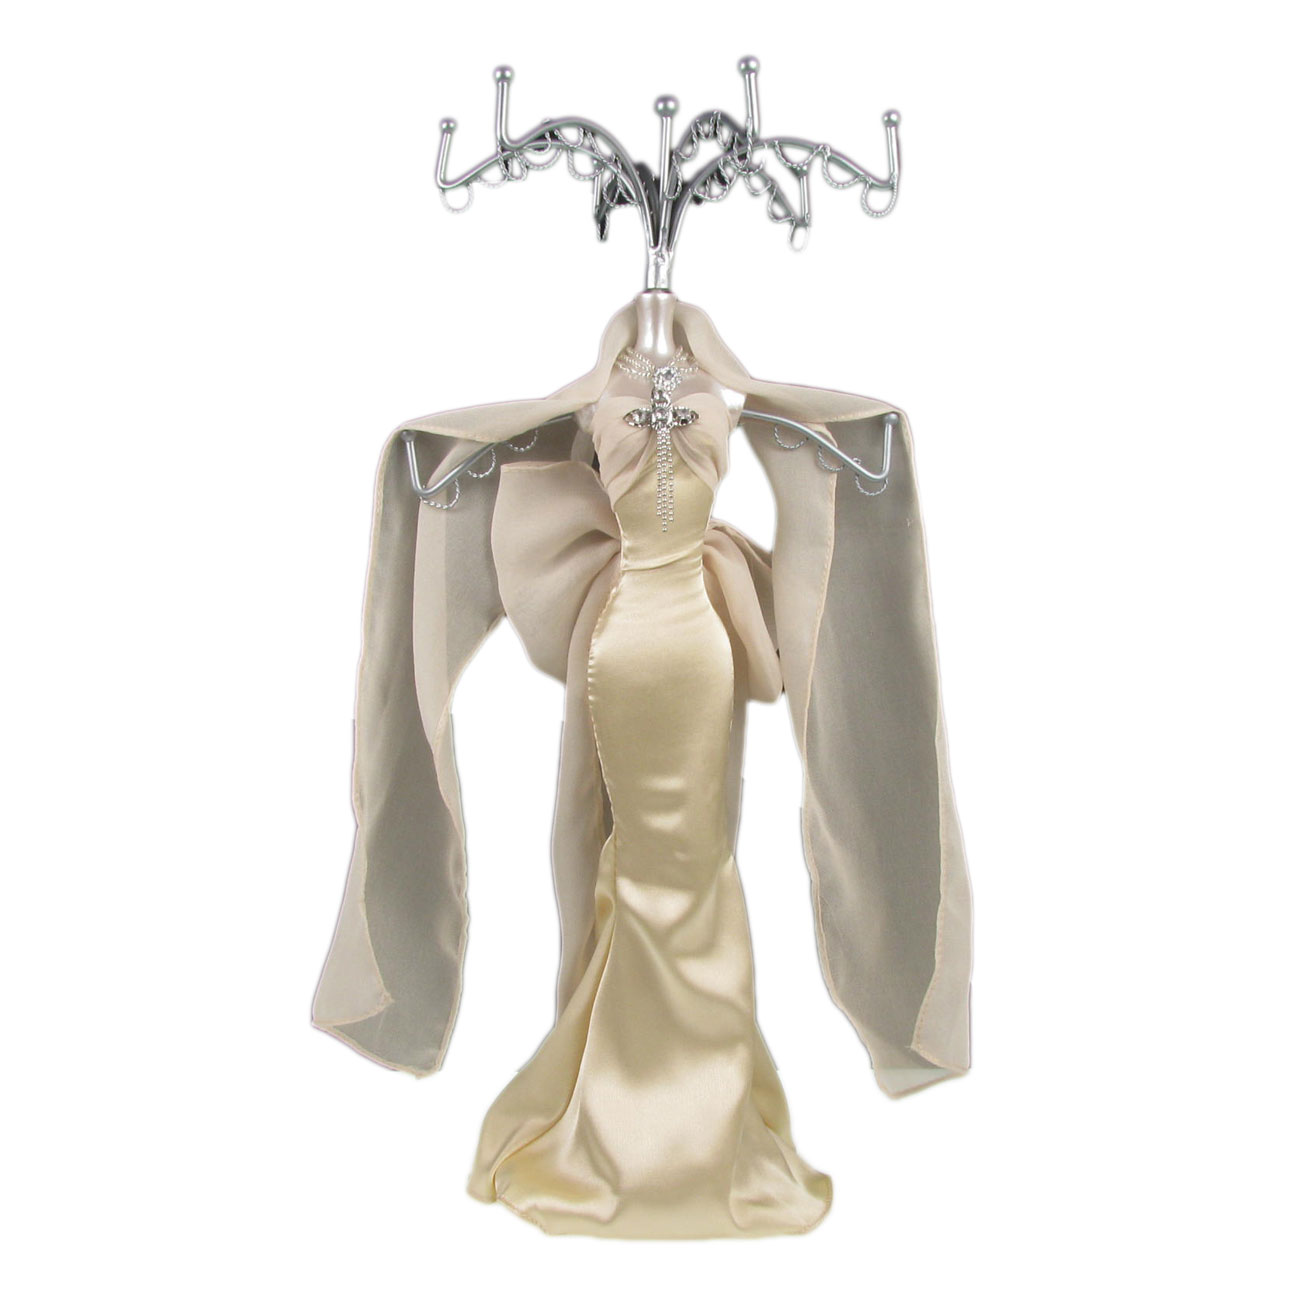 About 35% of these are mannequins, 11% are jewelry packaging & display, and 3% are display racks. A wide variety of lady jewelry stand options are available .